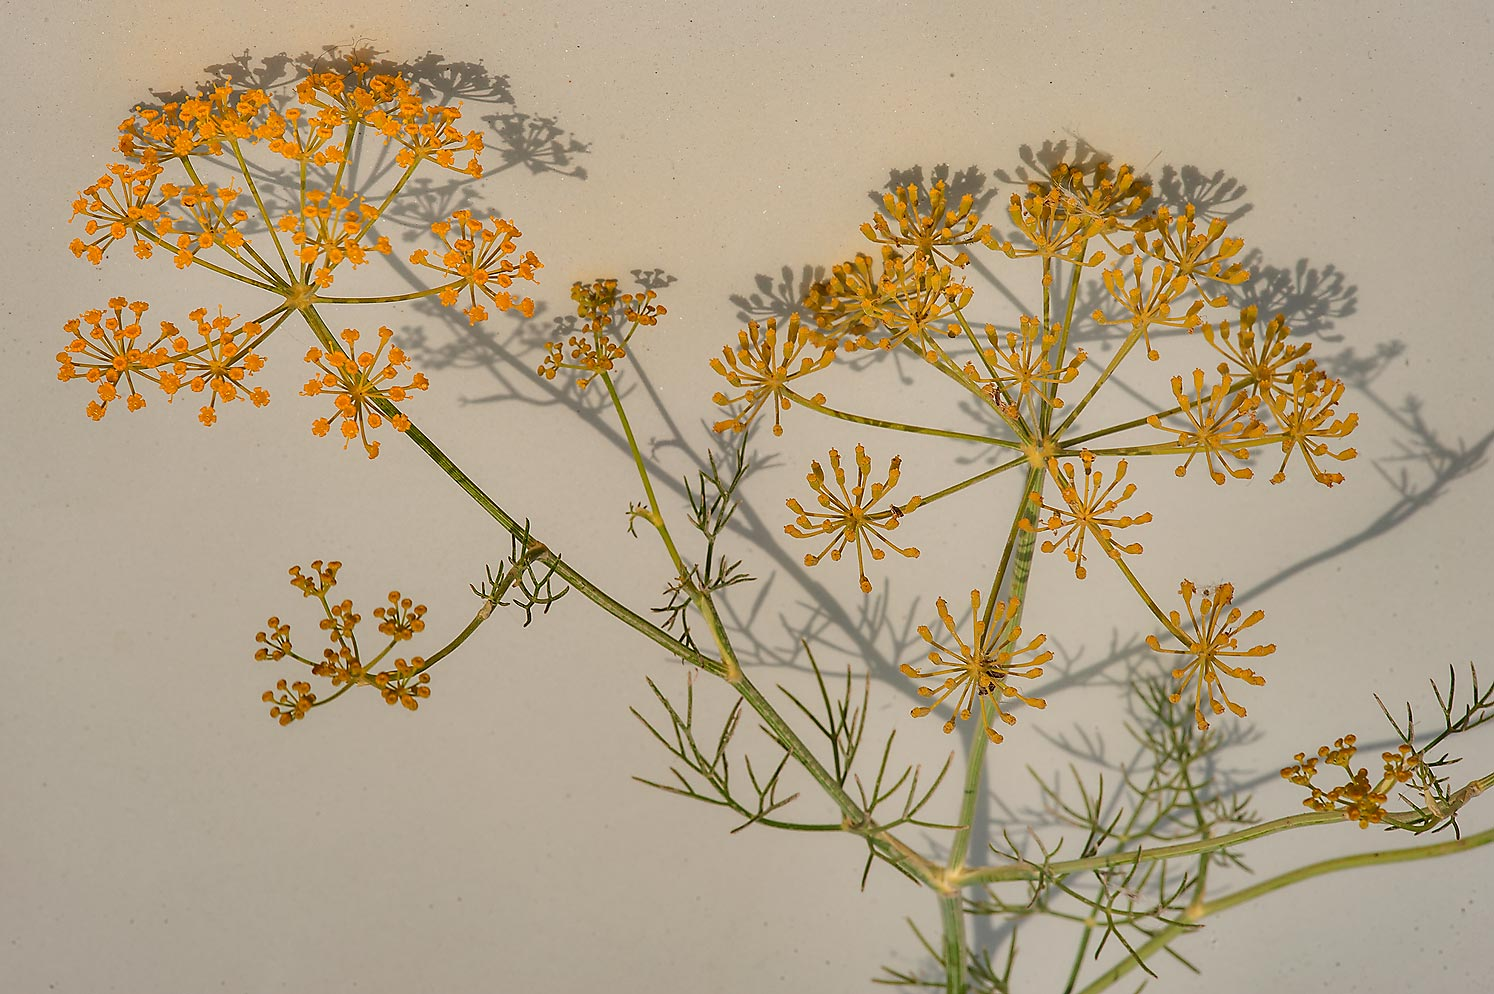 Flowers of dill (Anethum graveolens, local names...in Irkhaya (Irkaya) Farms. Qatar